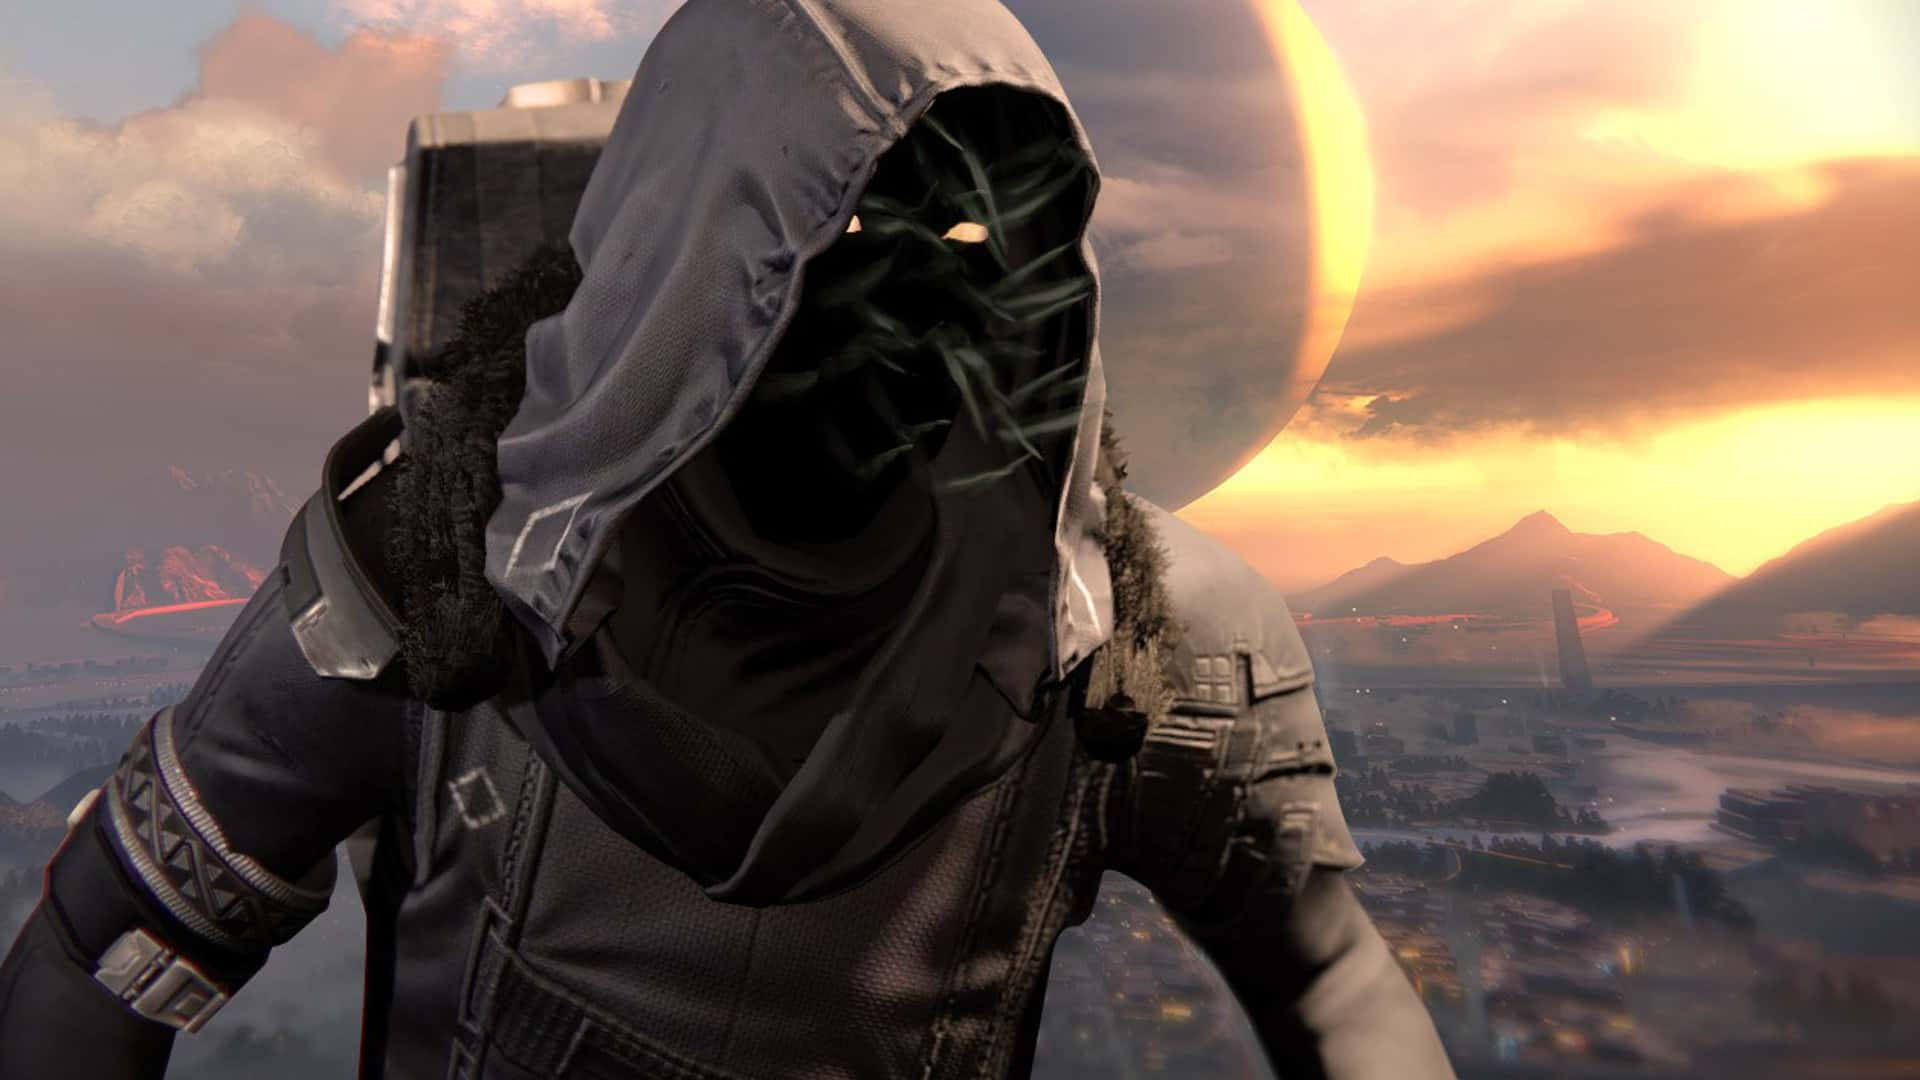 Destiny 2 Xur Location Today January 15, 2021